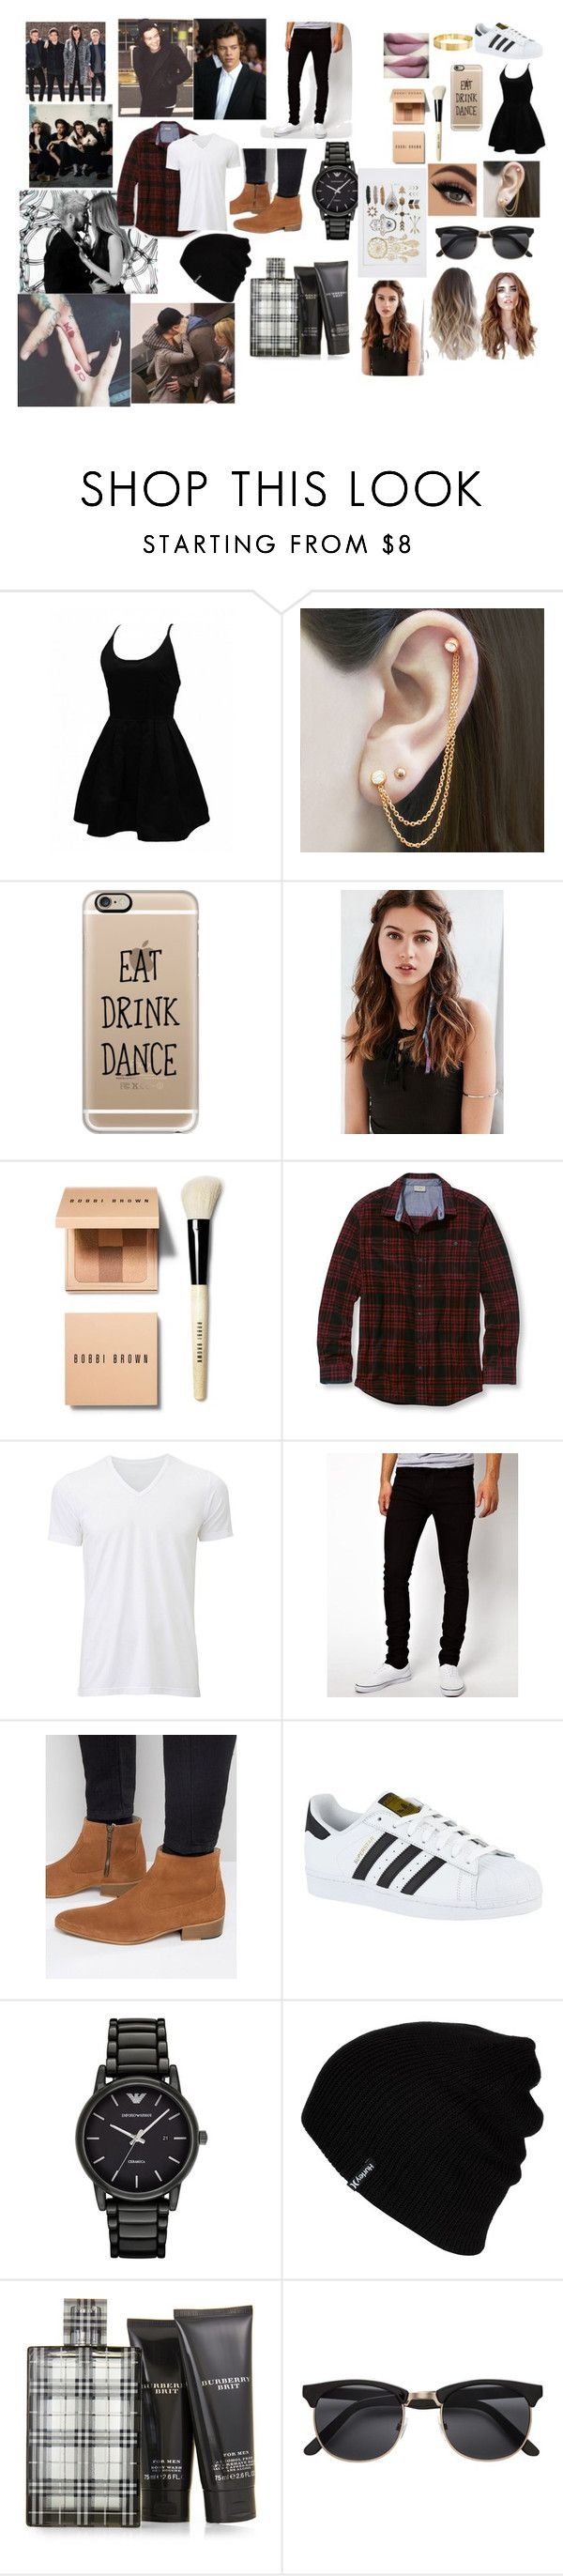 """walking in the wing"" by lolianalobo on Polyvore featuring Embers Gemstone Jewellery, Casetify, REGALROSE, Bobbi Brown Cosmetics, L.L.Bean, Uniqlo, Dr. Denim, Kurt Geiger, adidas y Emporio Armani"